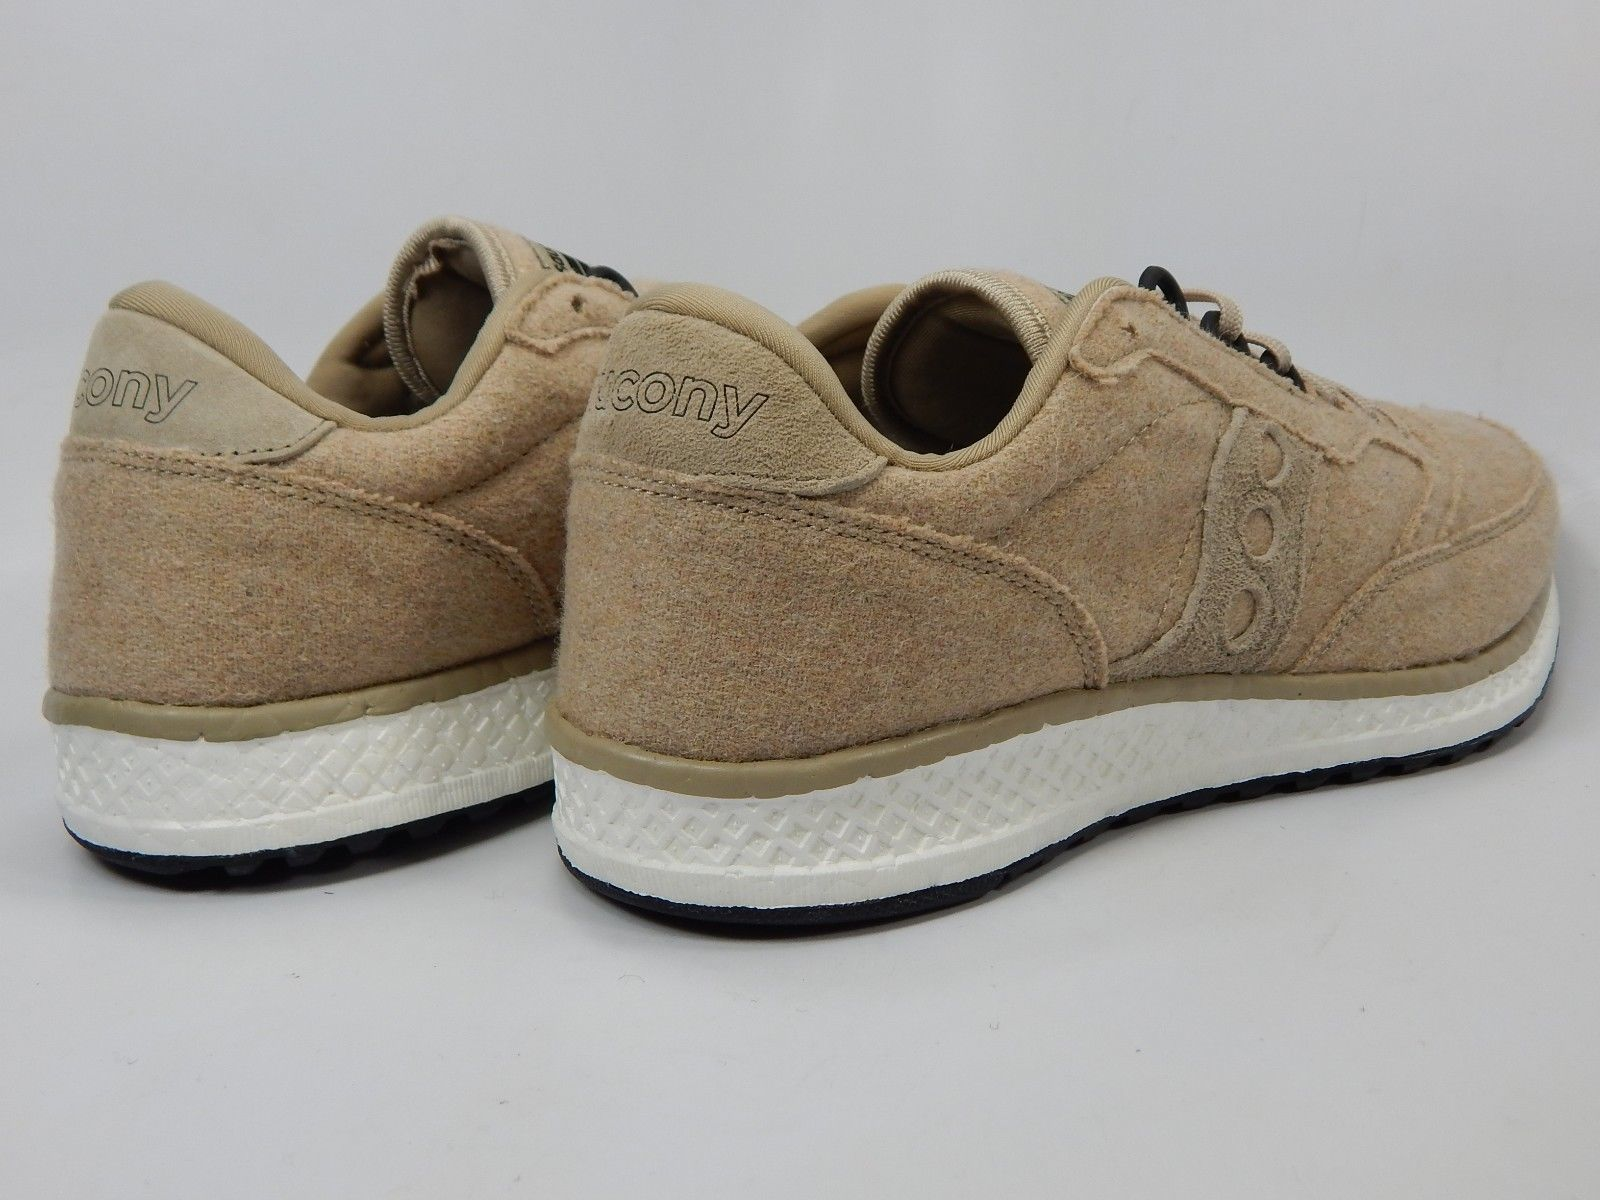 Saucony Freedom Runner Men's Running Shoes Sz US 9 M (D) EU 42.5 Tan S40005-2